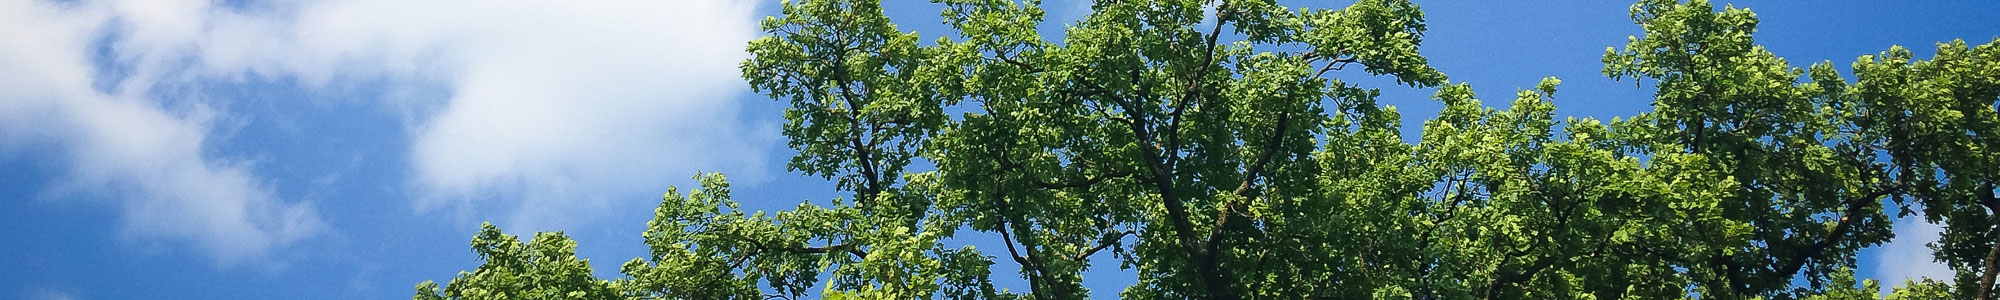 Image of summer day with tree in blue sky.